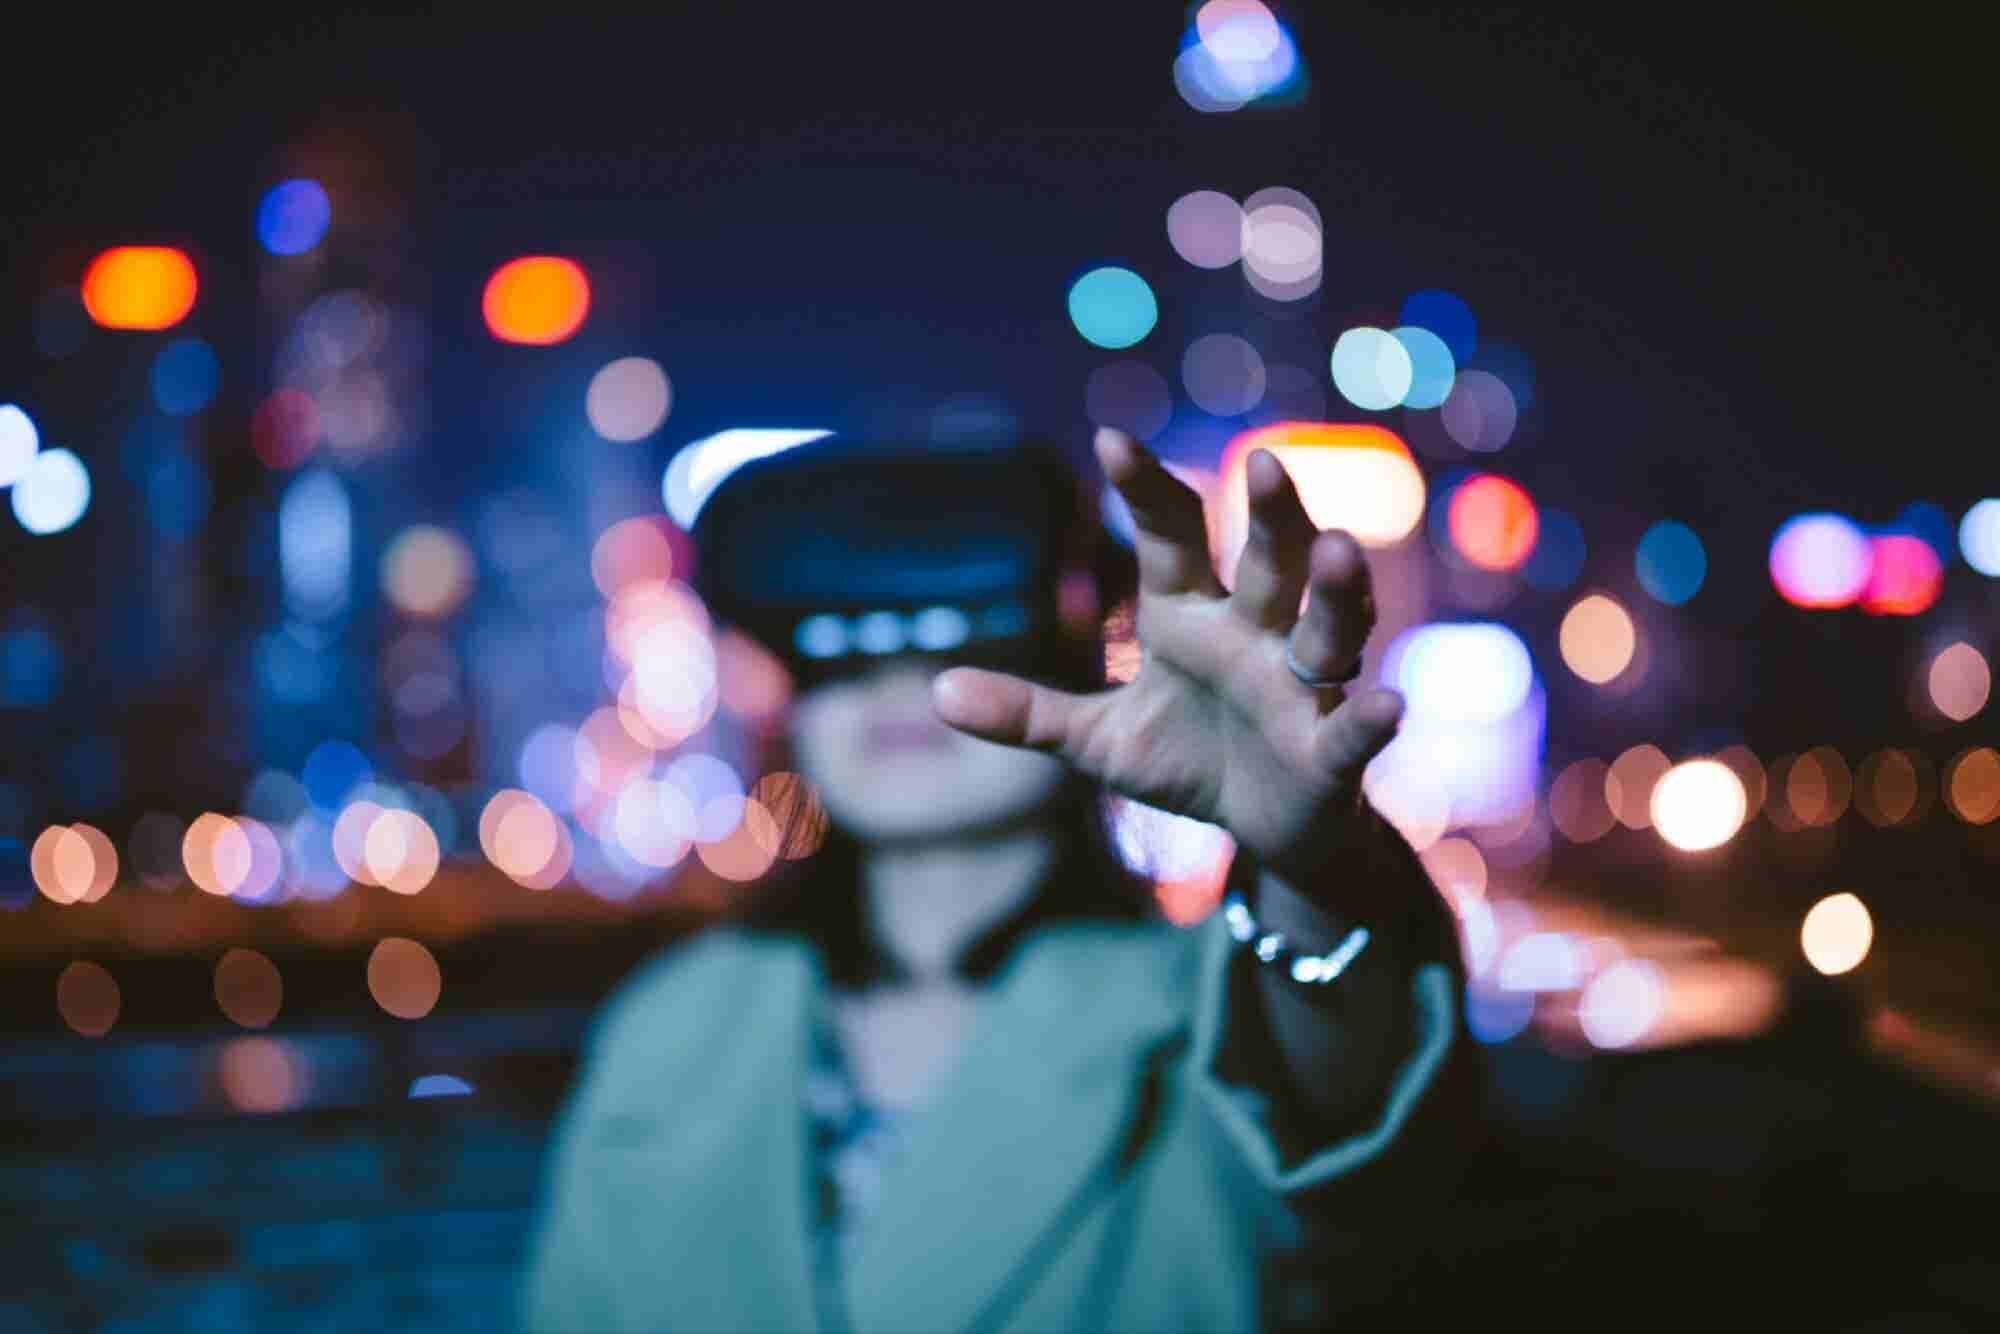 These Are the Top Mixed Reality Companies in the World Today